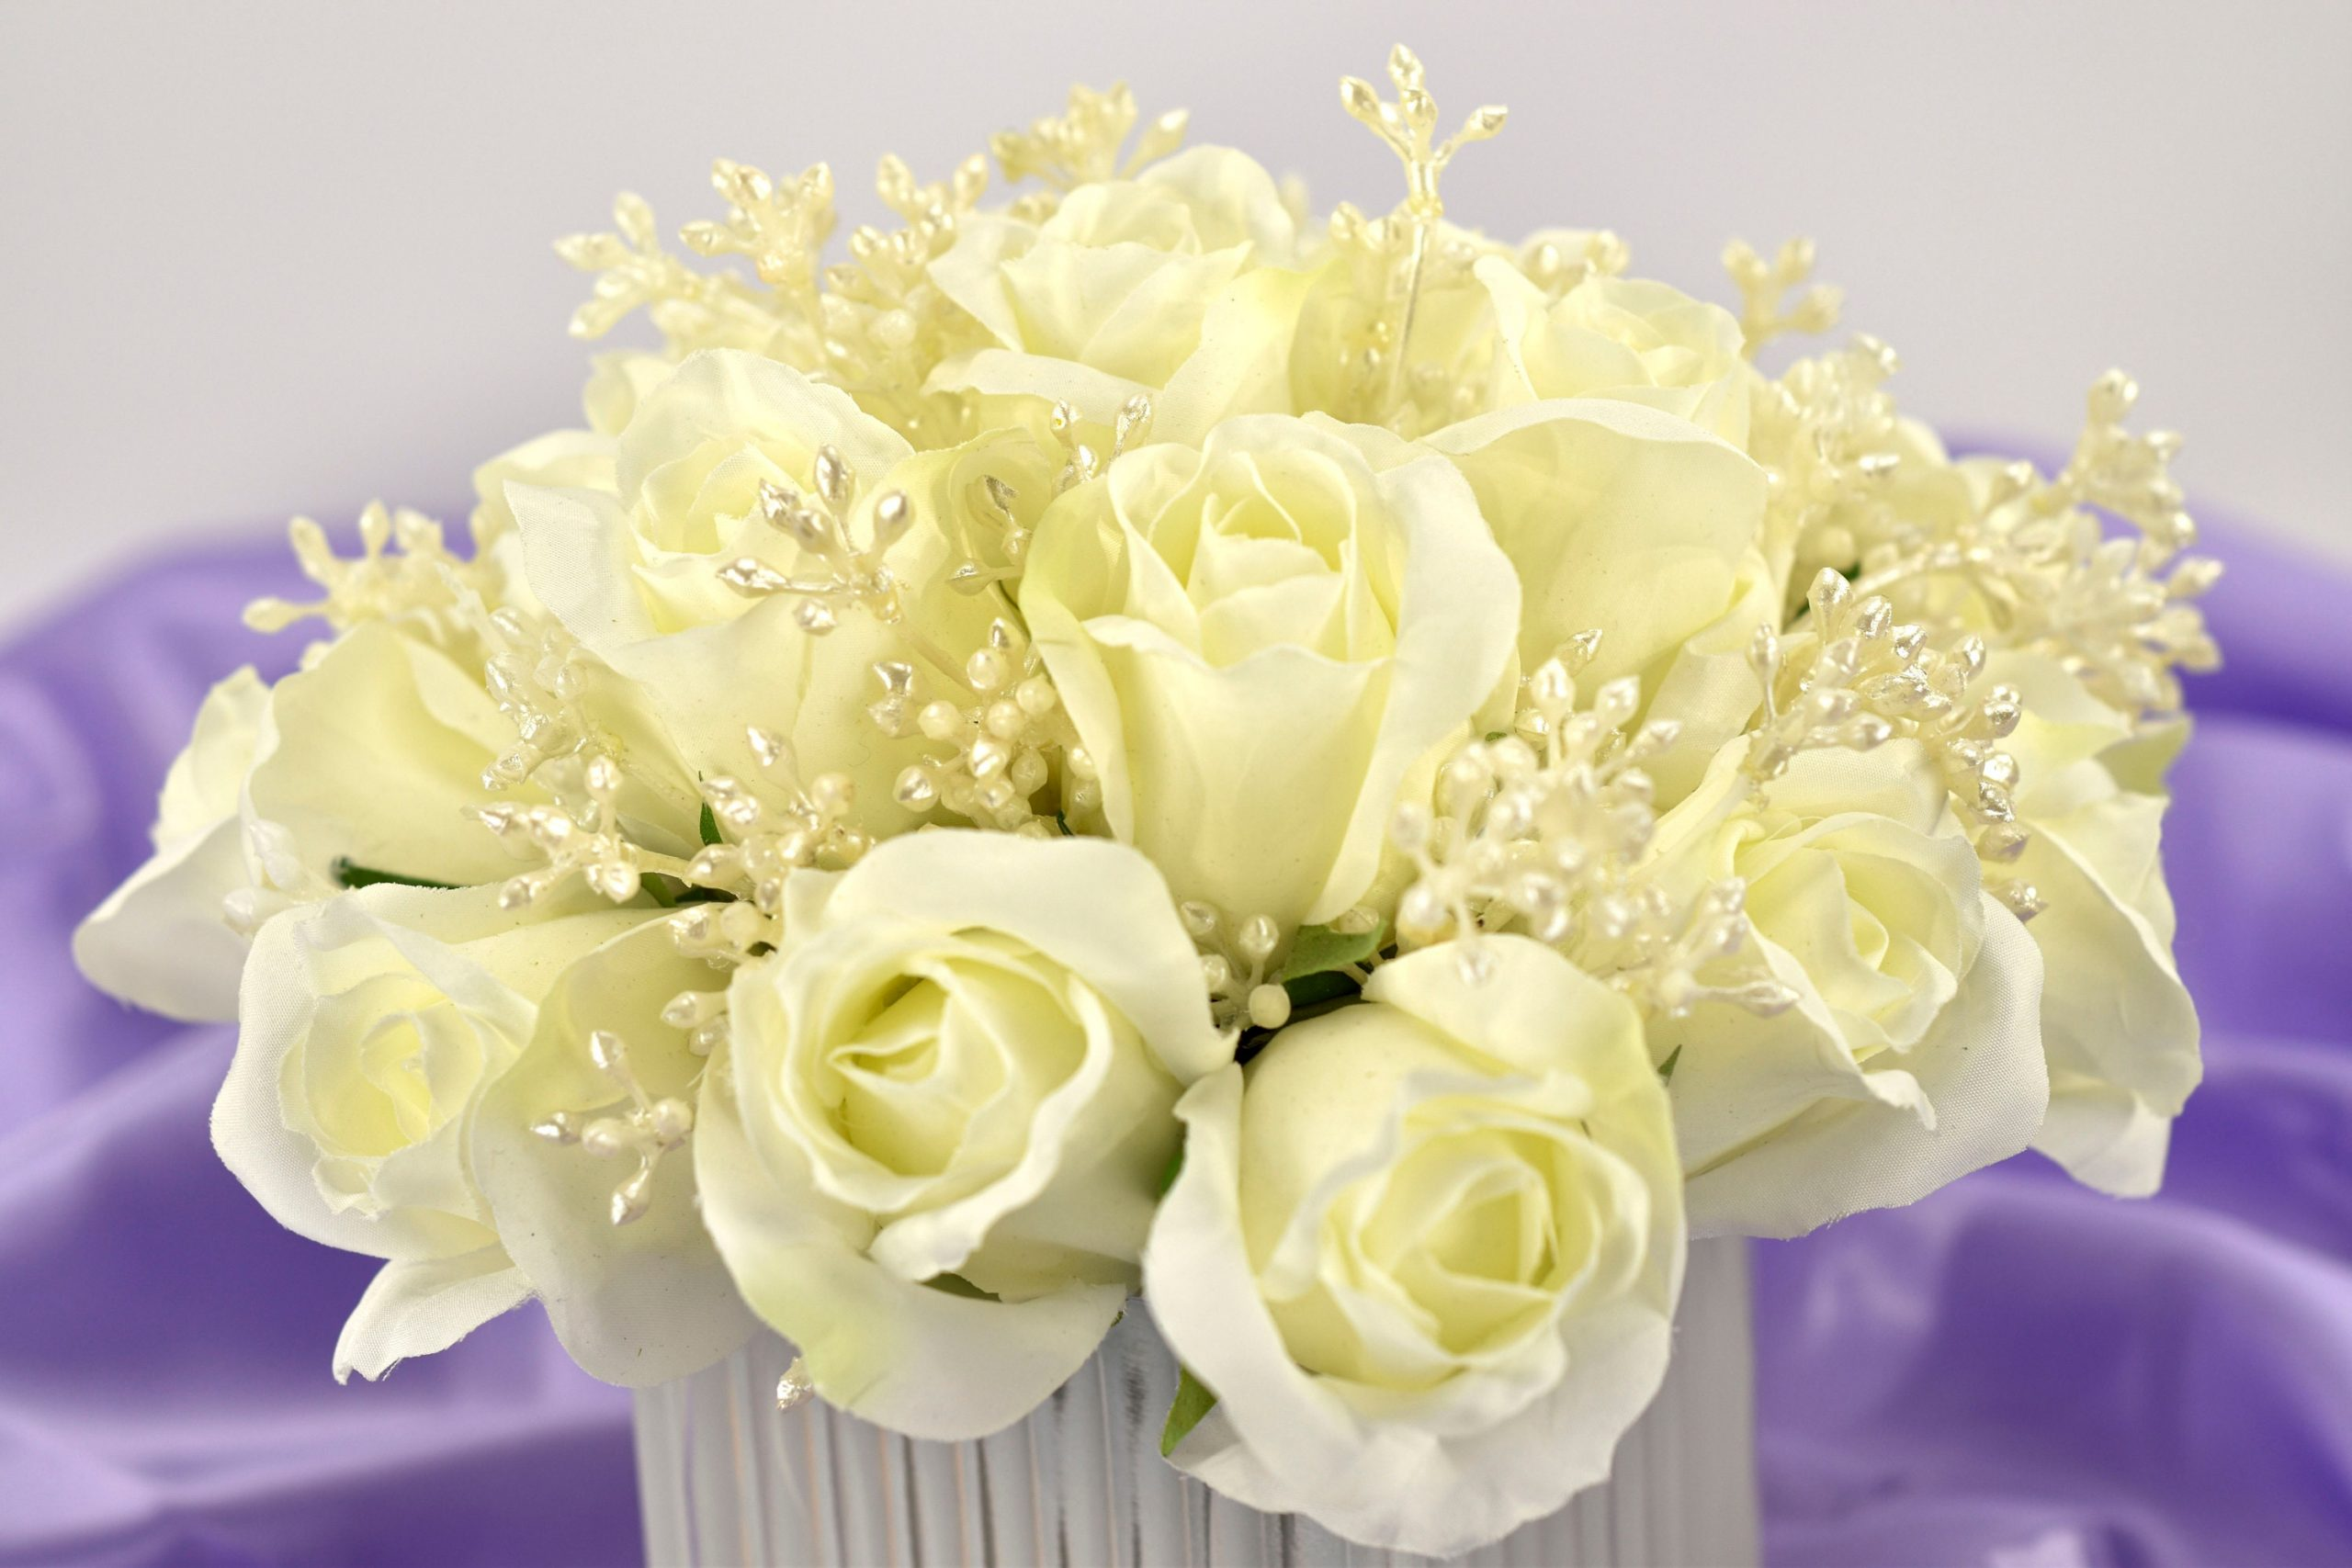 Wedding Table Flowers, Wedding Centre Piece, White Roses in A Frosted Vase